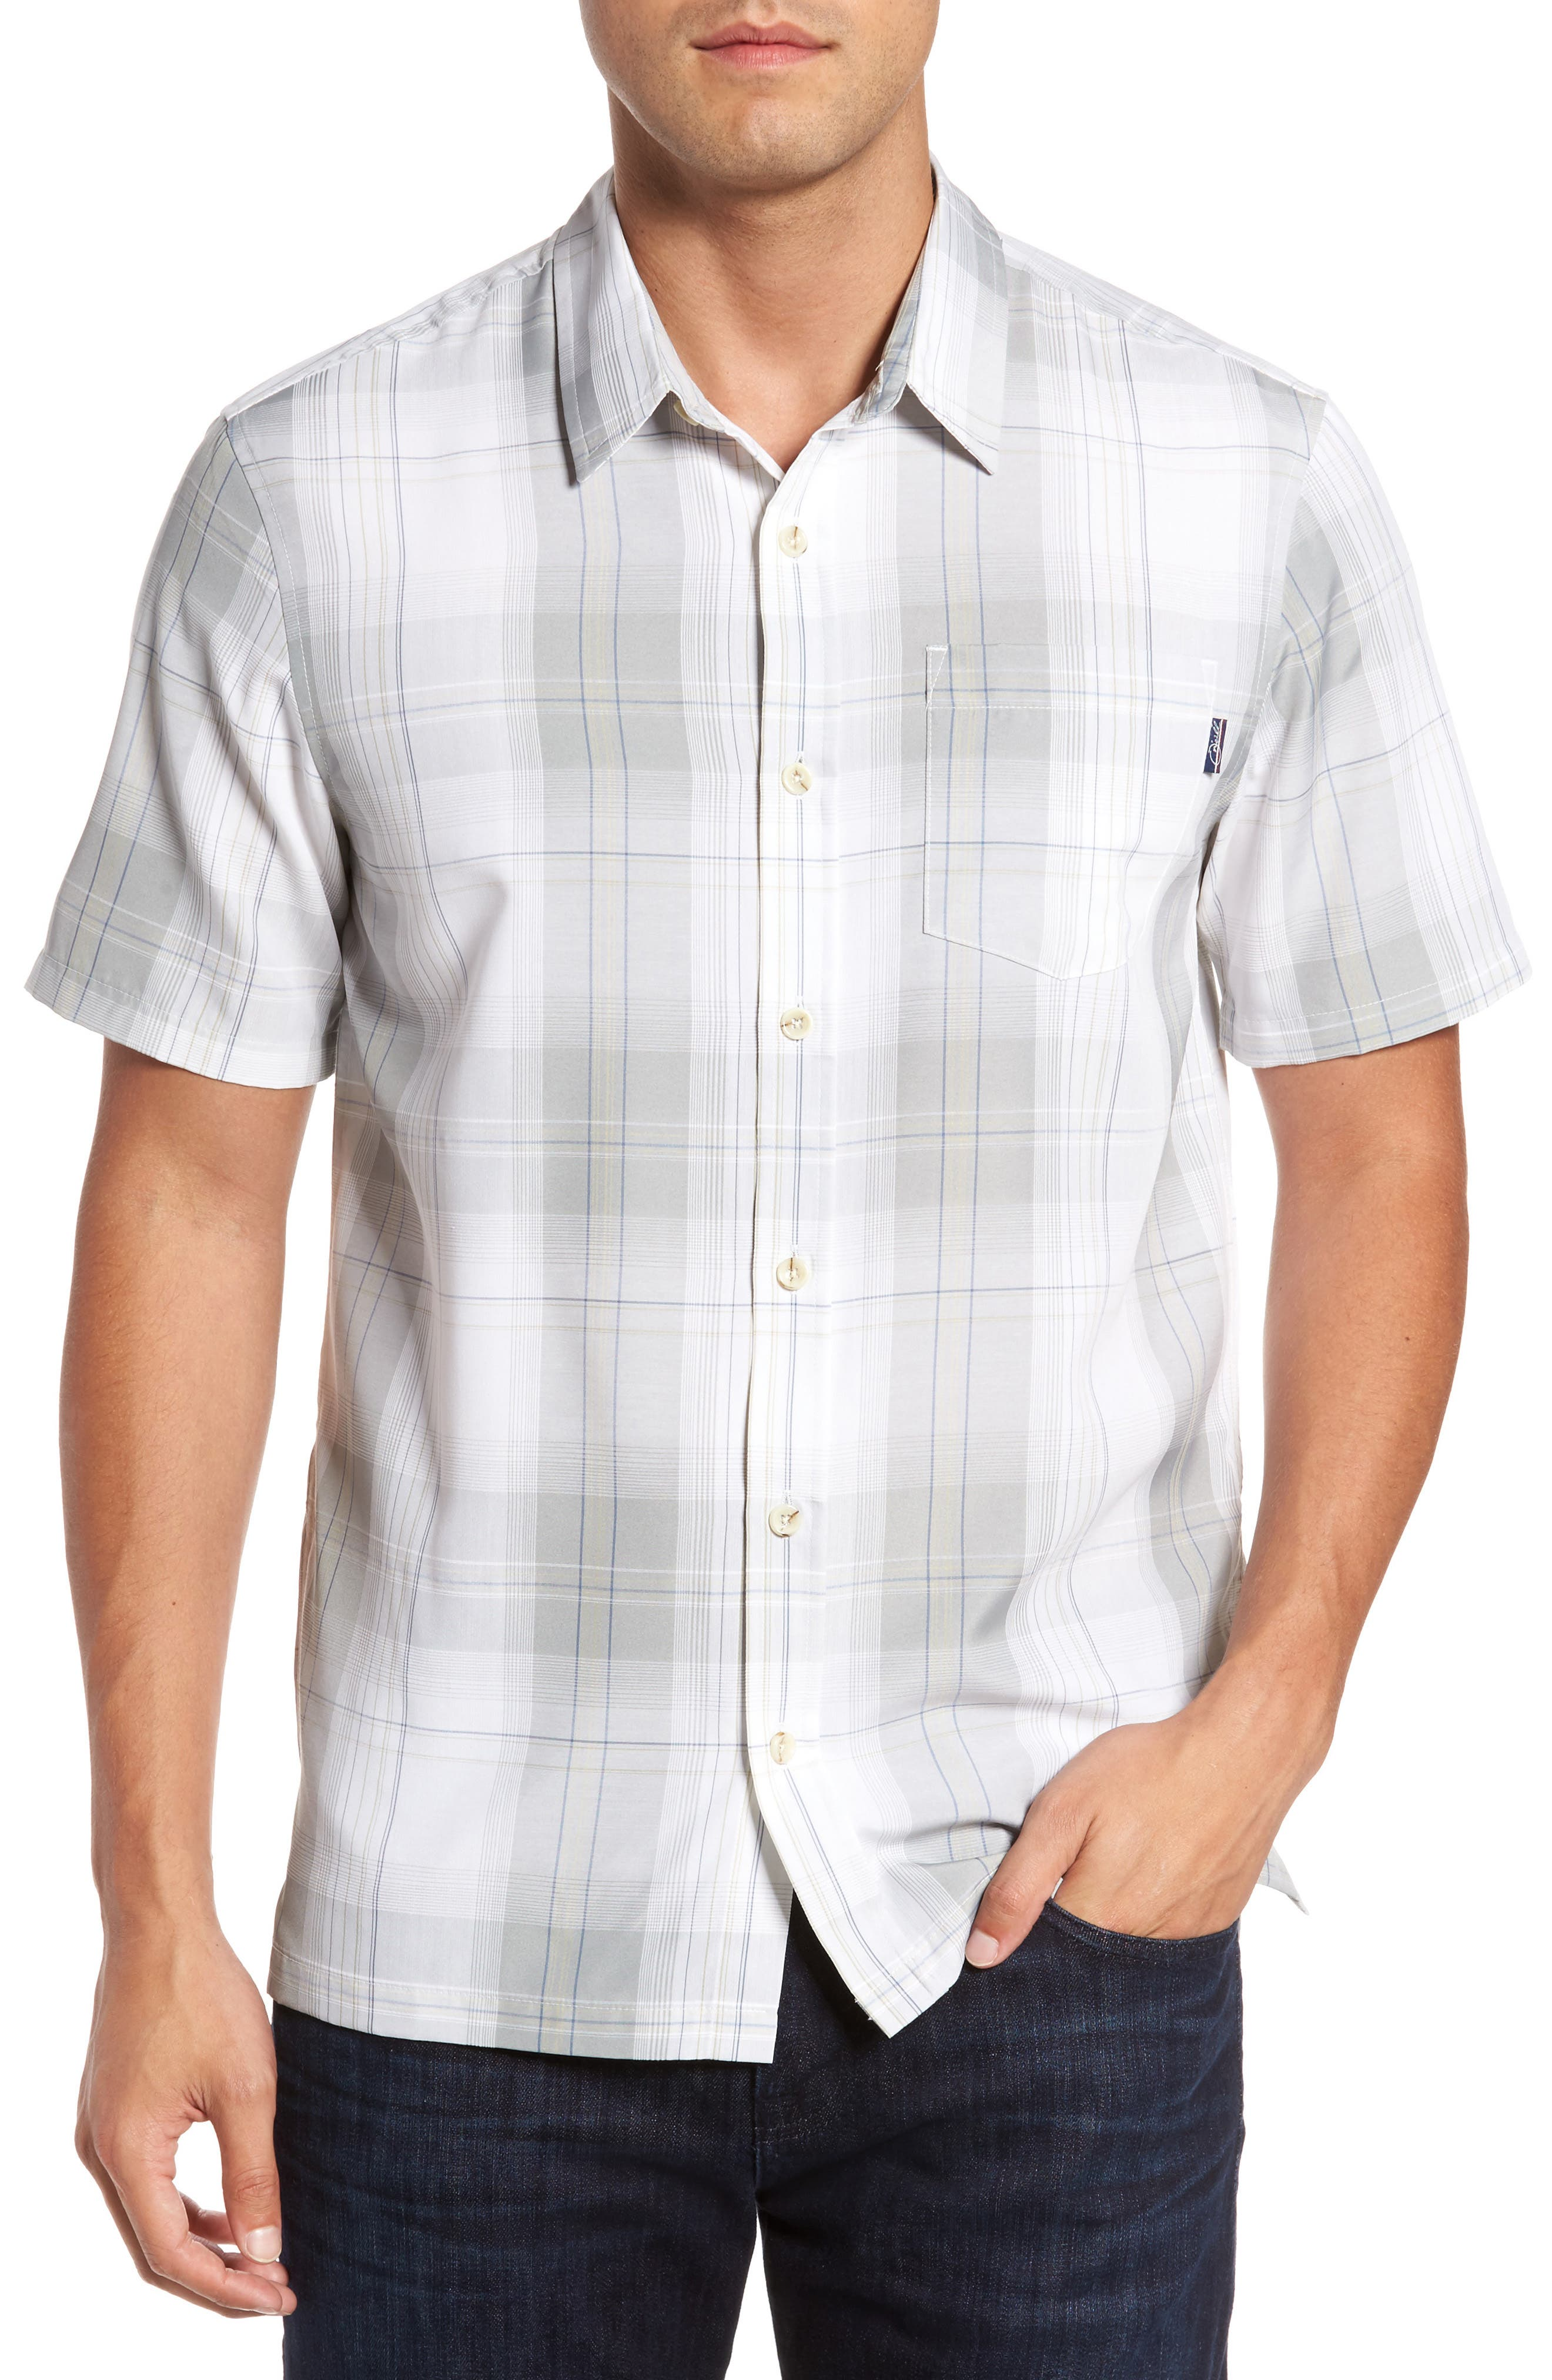 Outerbanks Plaid Sport Shirt,                             Main thumbnail 1, color,                             020